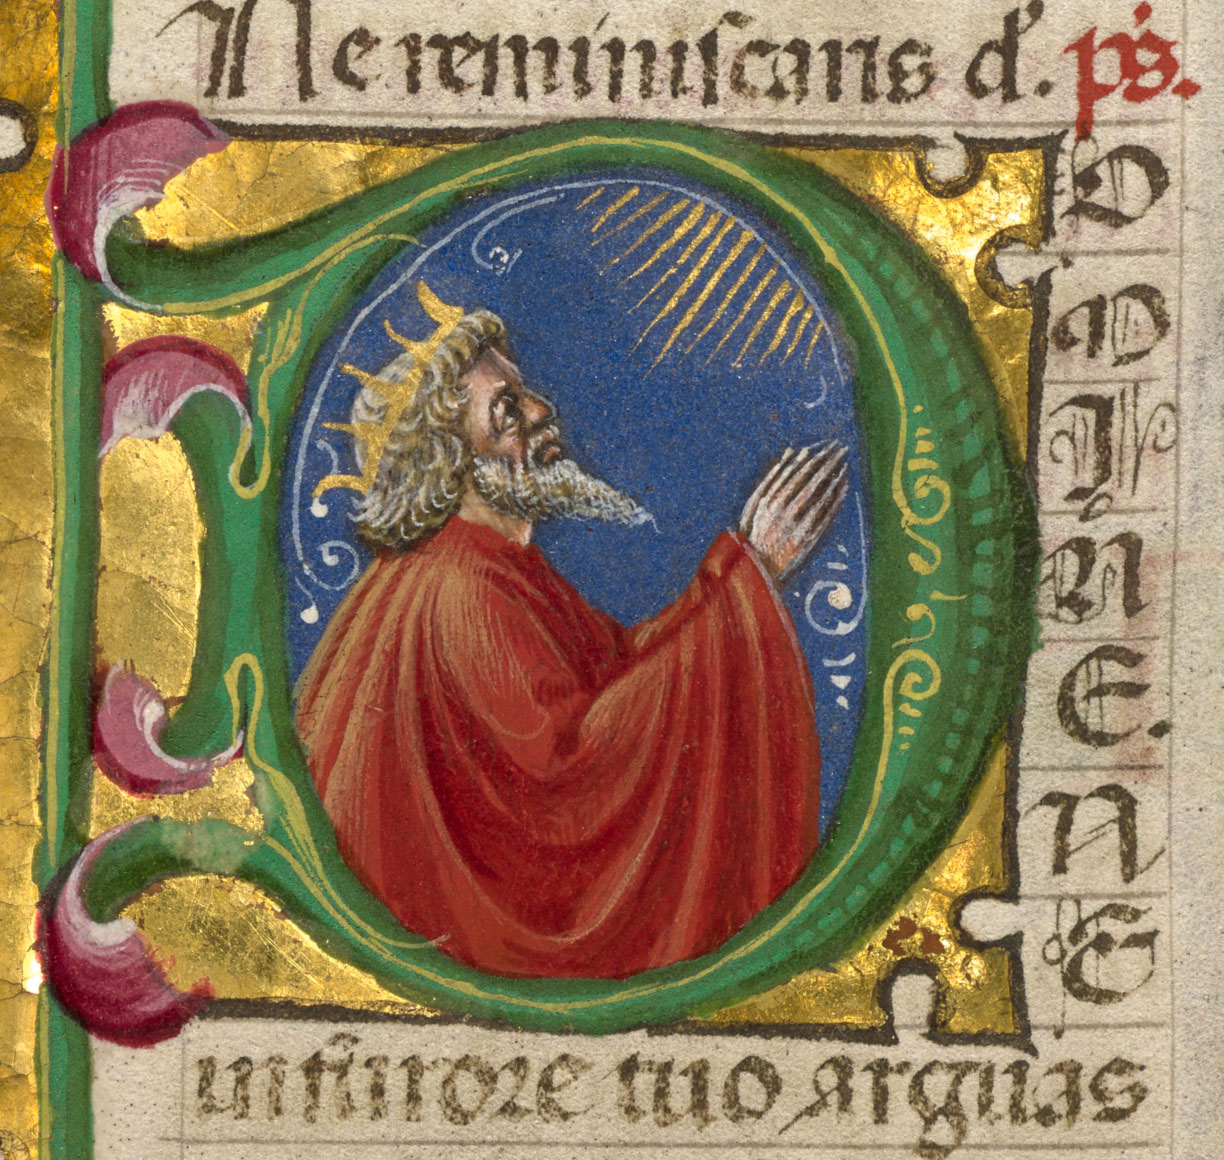 A bearded man with red robes and a crown faces upward right in supplication